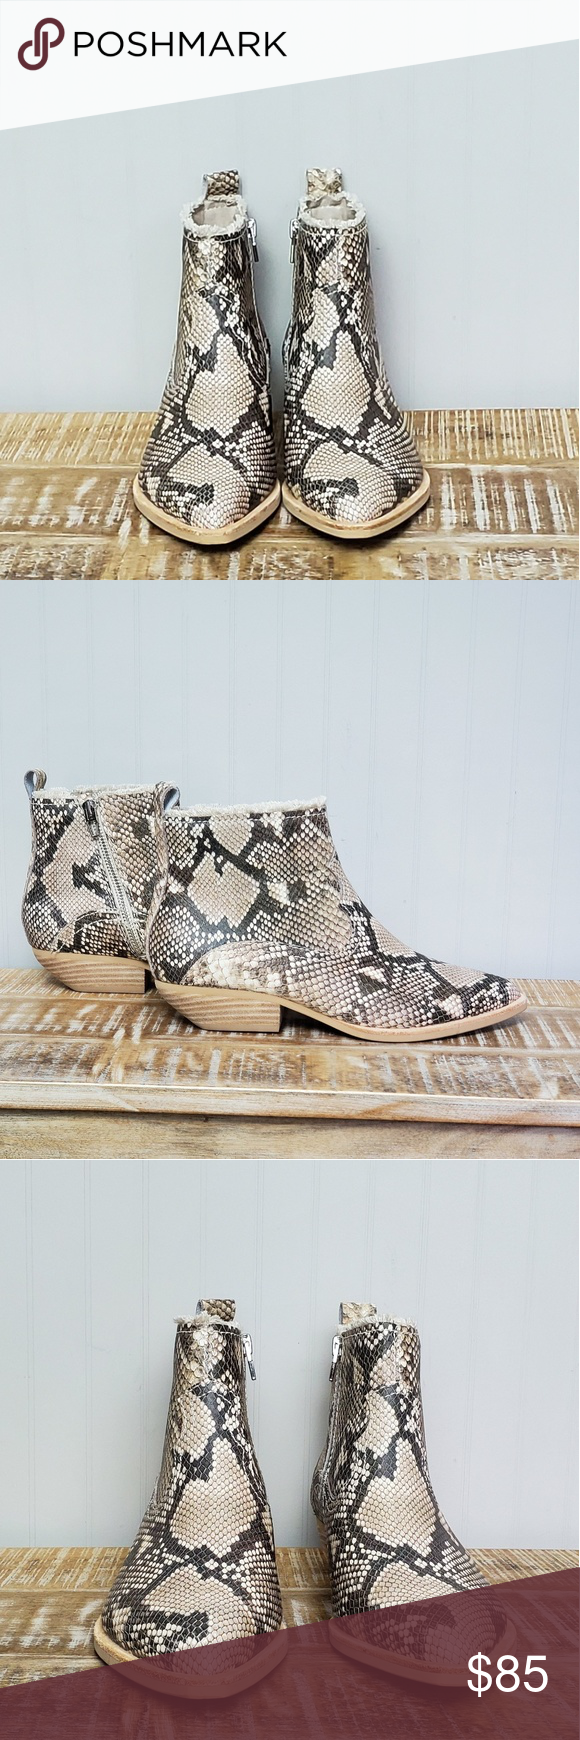 Dolce Vita NWOT Snake print boots with silver zipper on the inside. Beautiful statement she to add excitement to a simple outfit. Dolce Vita Shoes Ankle Boots & Booties #snakeprintbootsoutfit